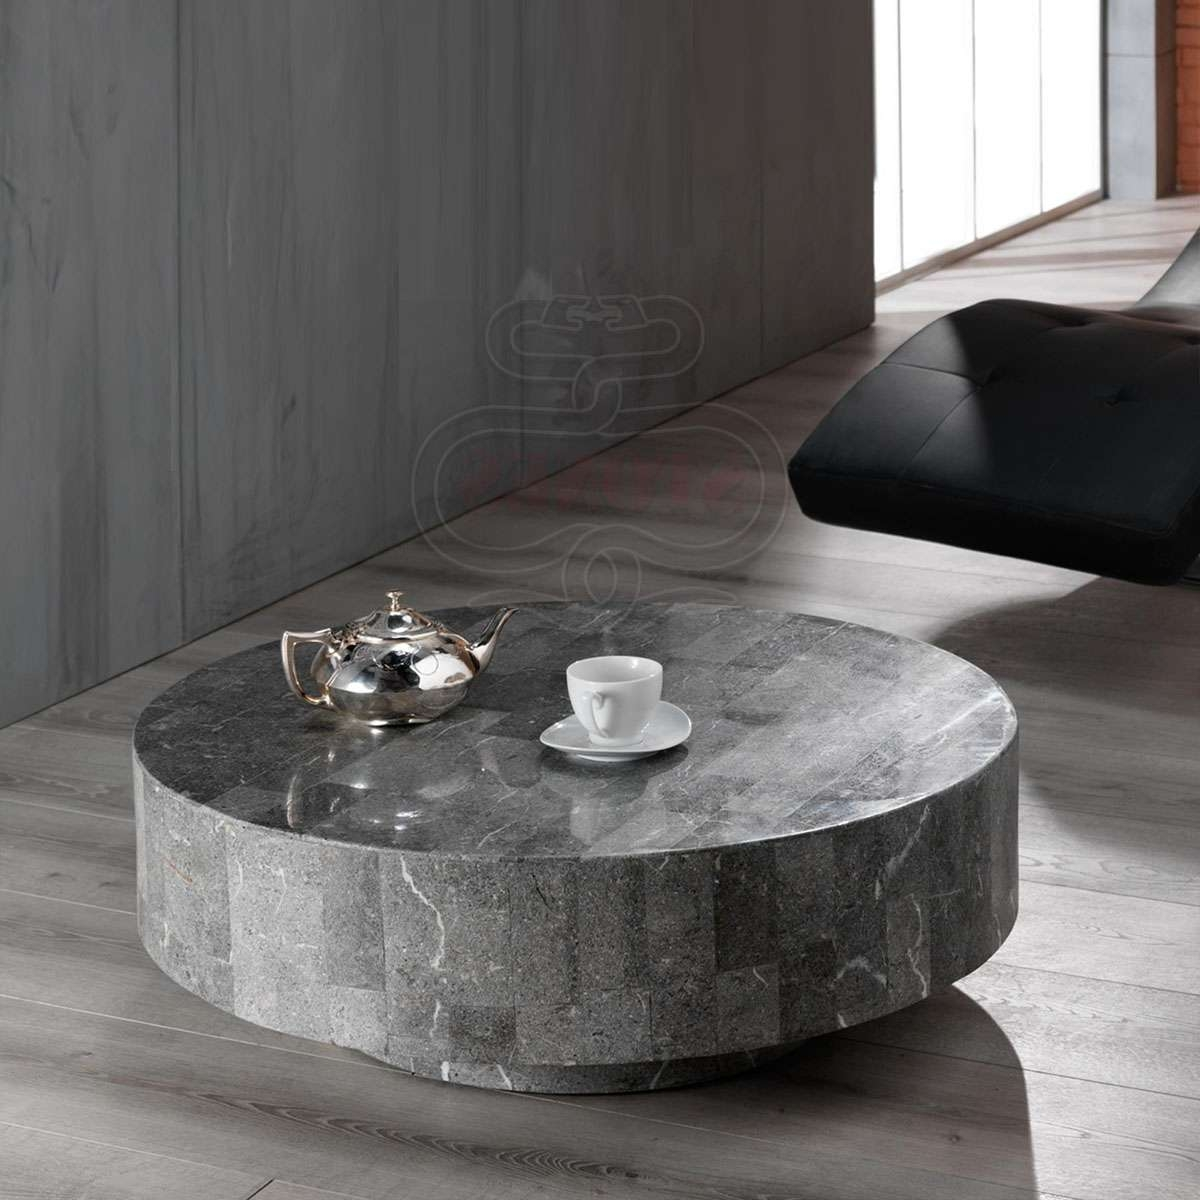 Coffee Table : Singular Contemporary Coffee Table Photo With Regard To 2017 Contemporary Round Coffee Tables (View 3 of 20)